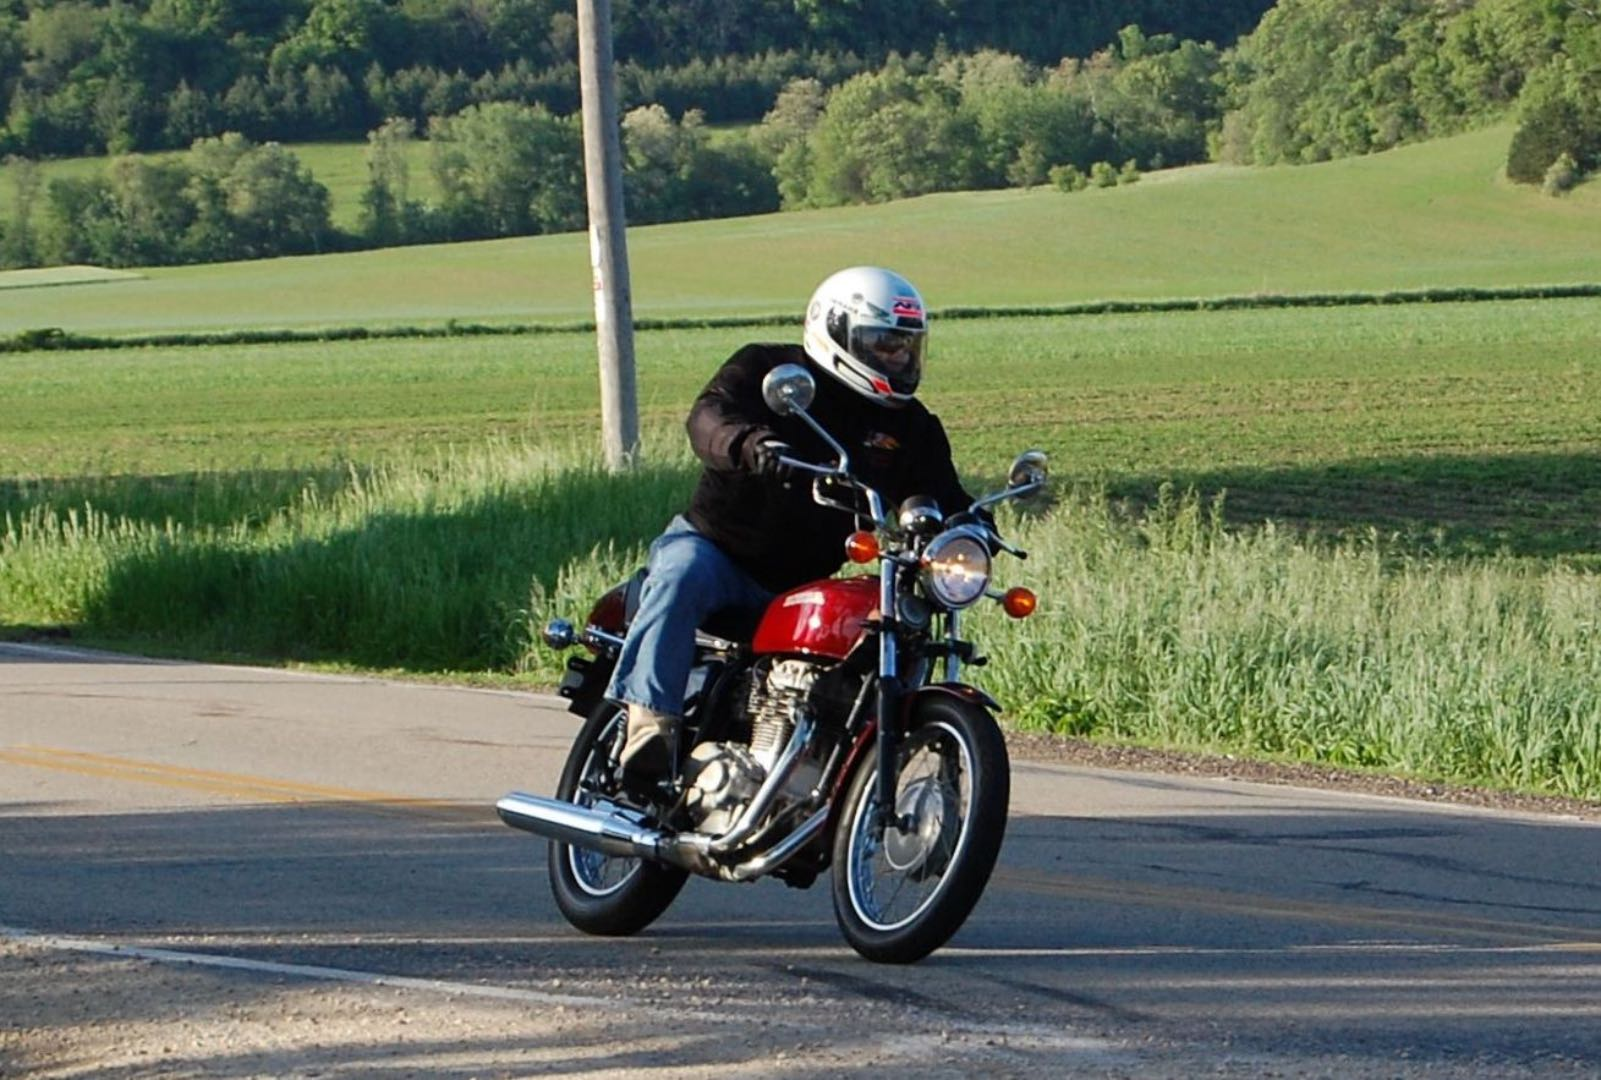 Motorcycle Memoir | 1st Ride was the Worst - Even 40 years later!